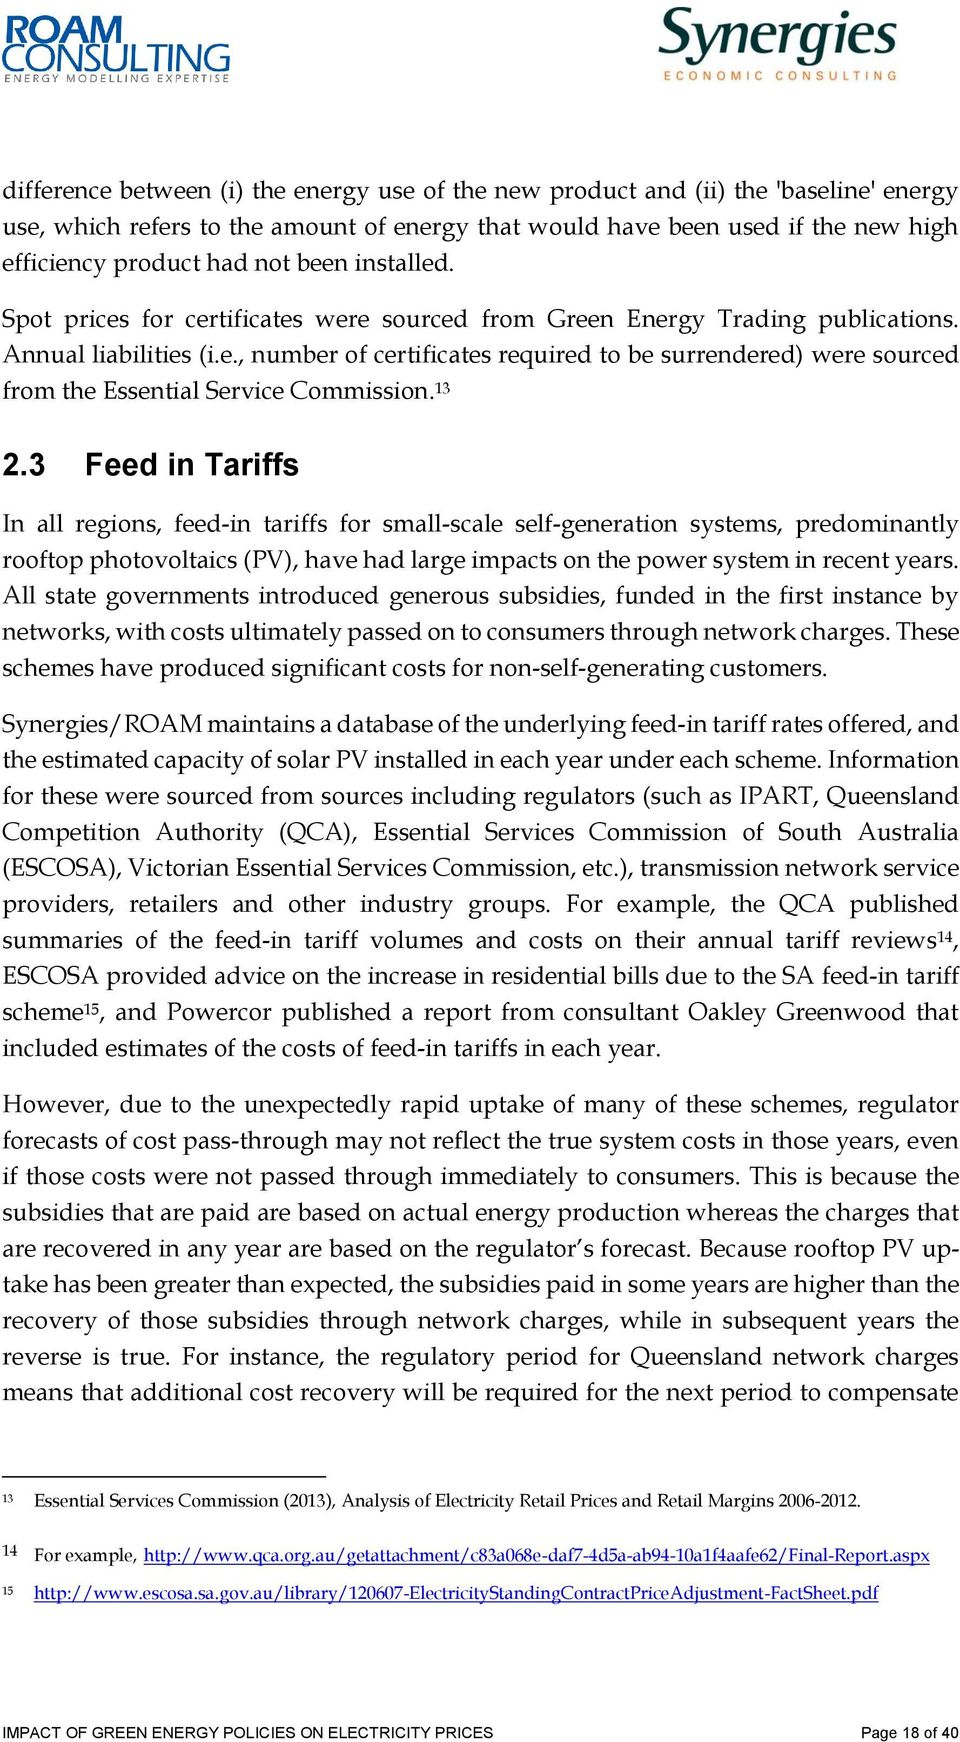 13 2.3 Feed in Tariffs In all regions, feed-in tariffs for small-scale self-generation systems, predominantly rooftop photovoltaics (PV), have had large impacts on the power system in recent years.